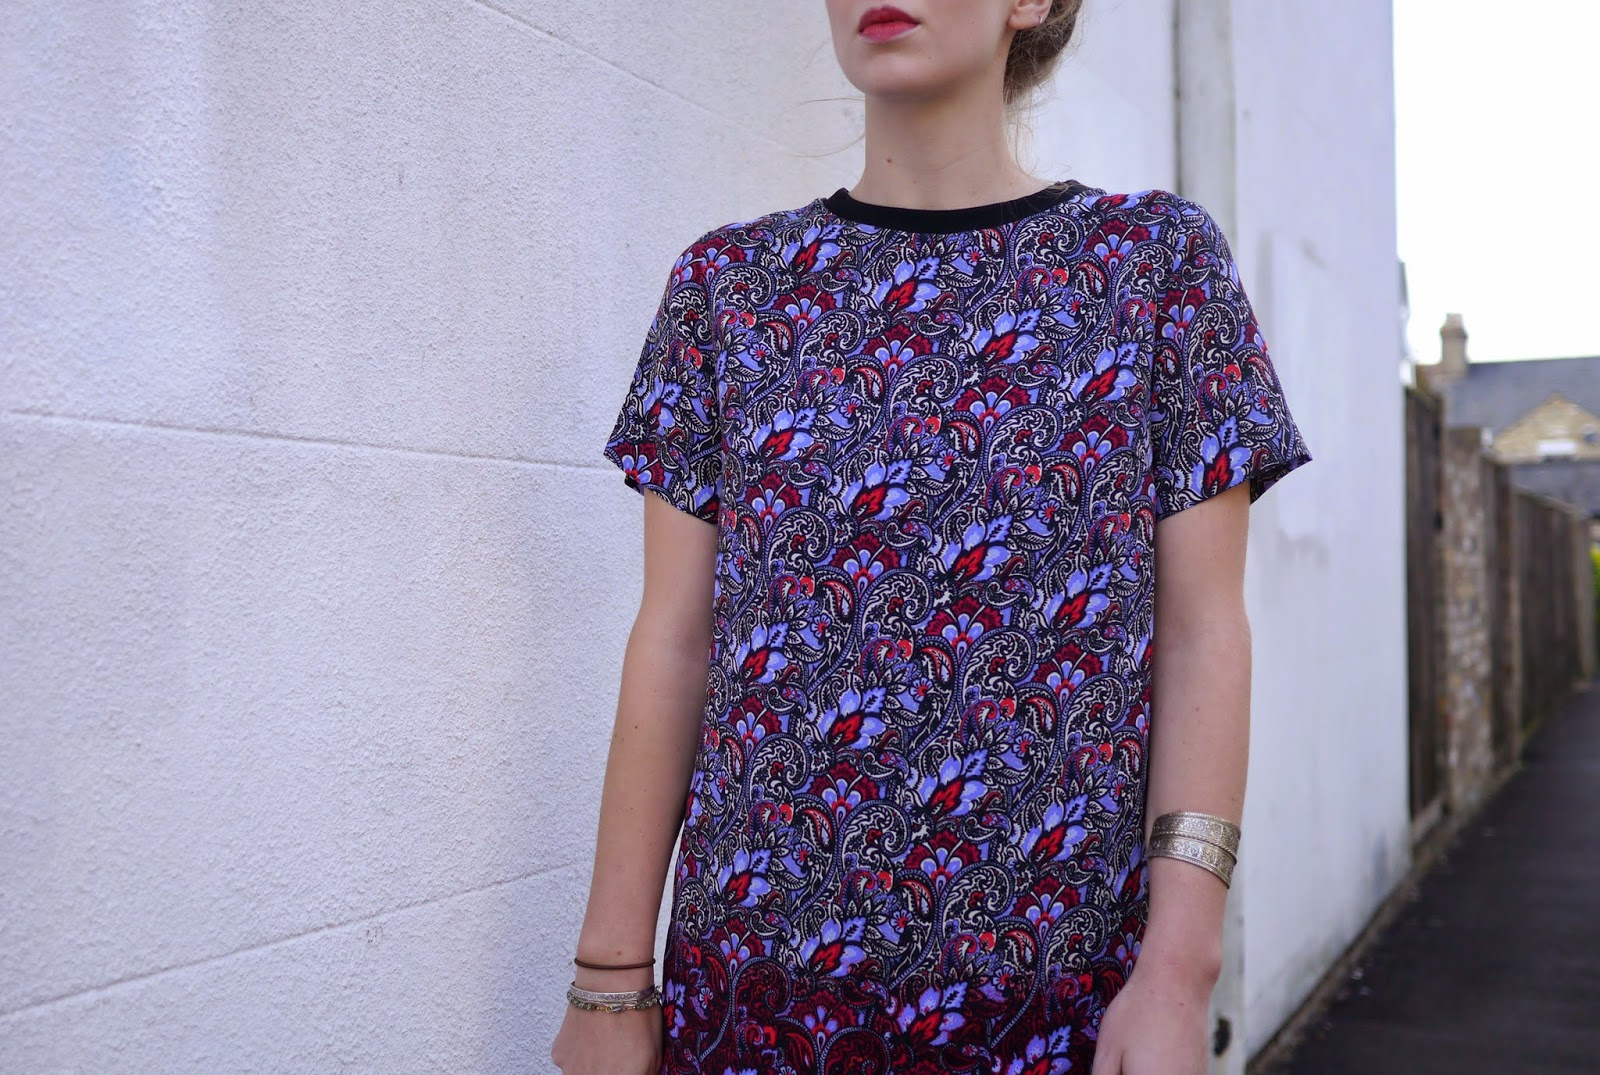 New Look High Neck Floral Tshirt Smock Dress with Silver Cuff